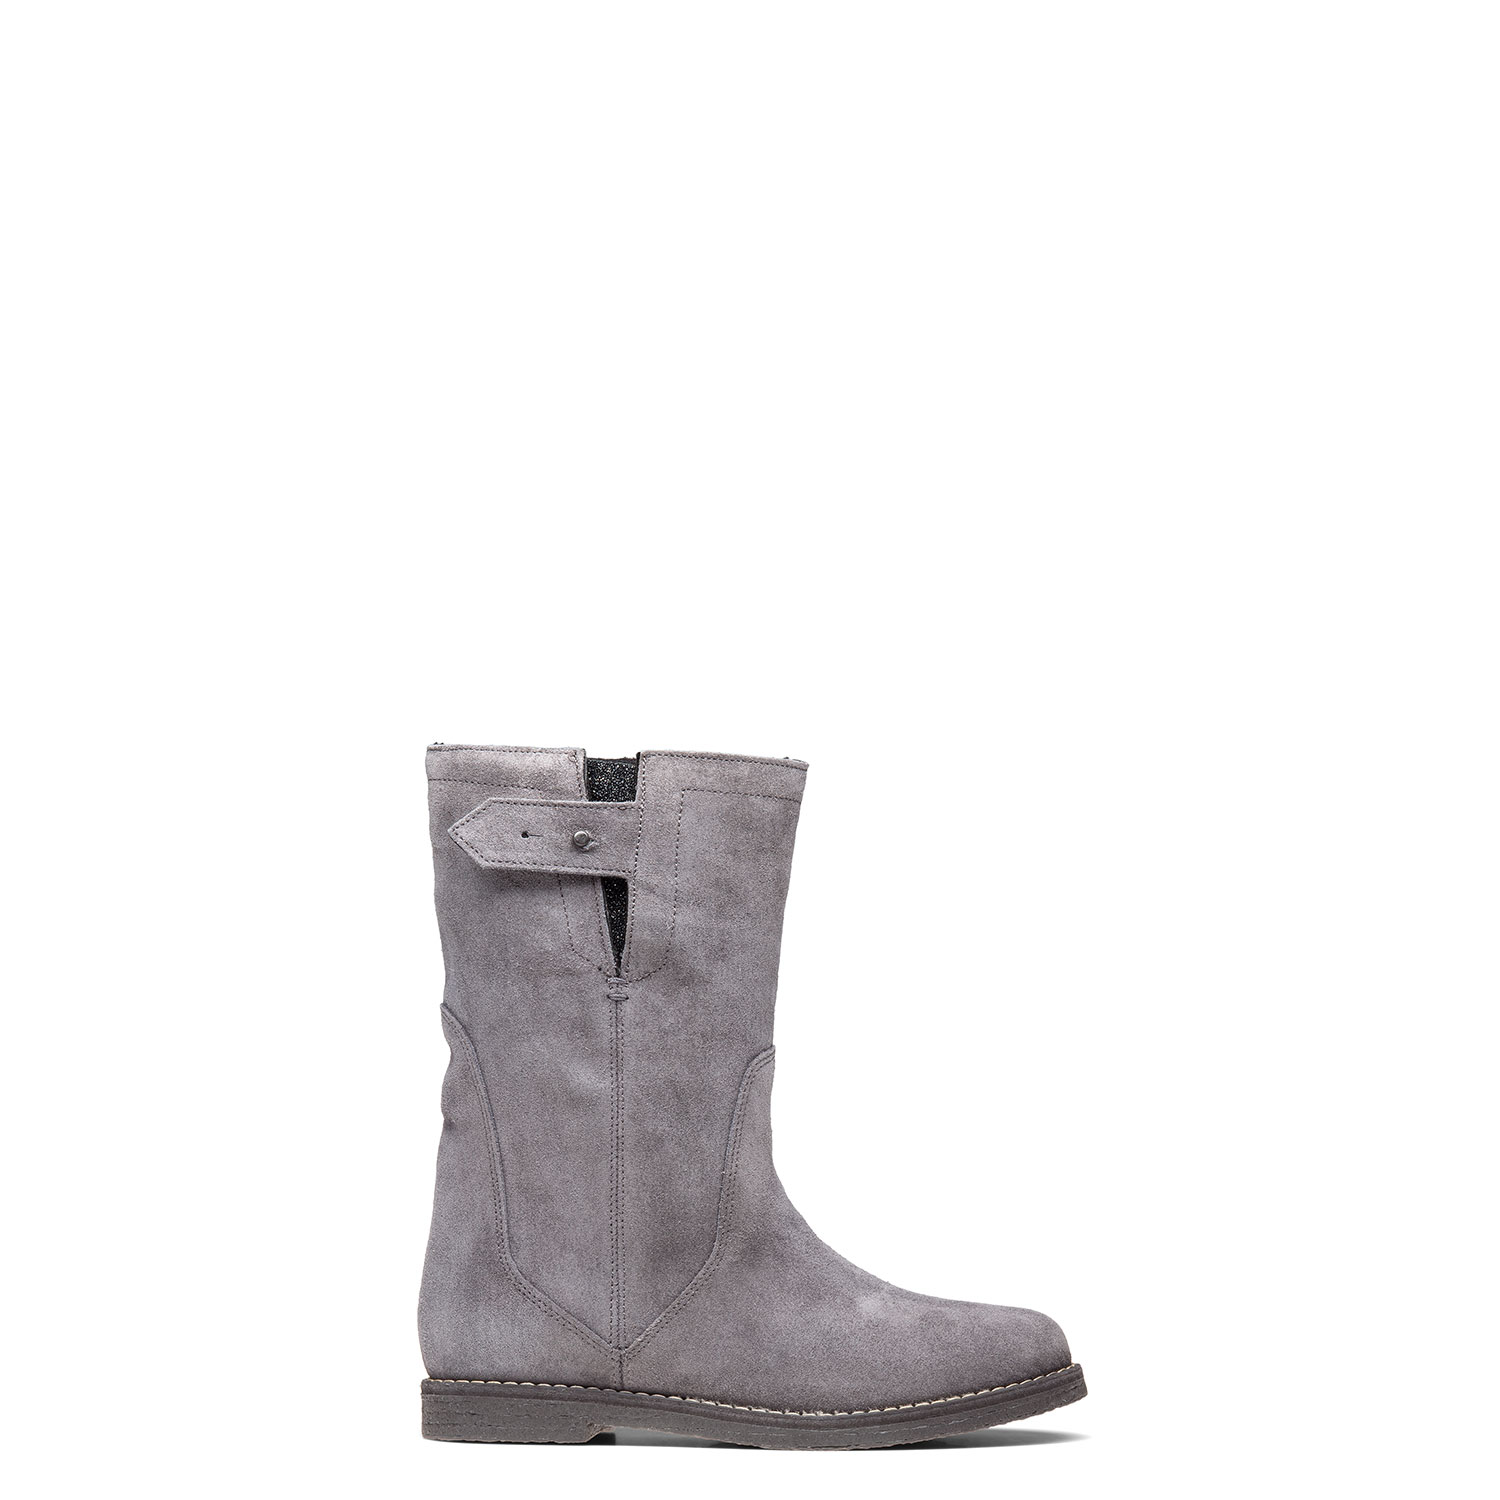 Women's cold weather mid-calf boots PAZOLINI SW-SNW2-10